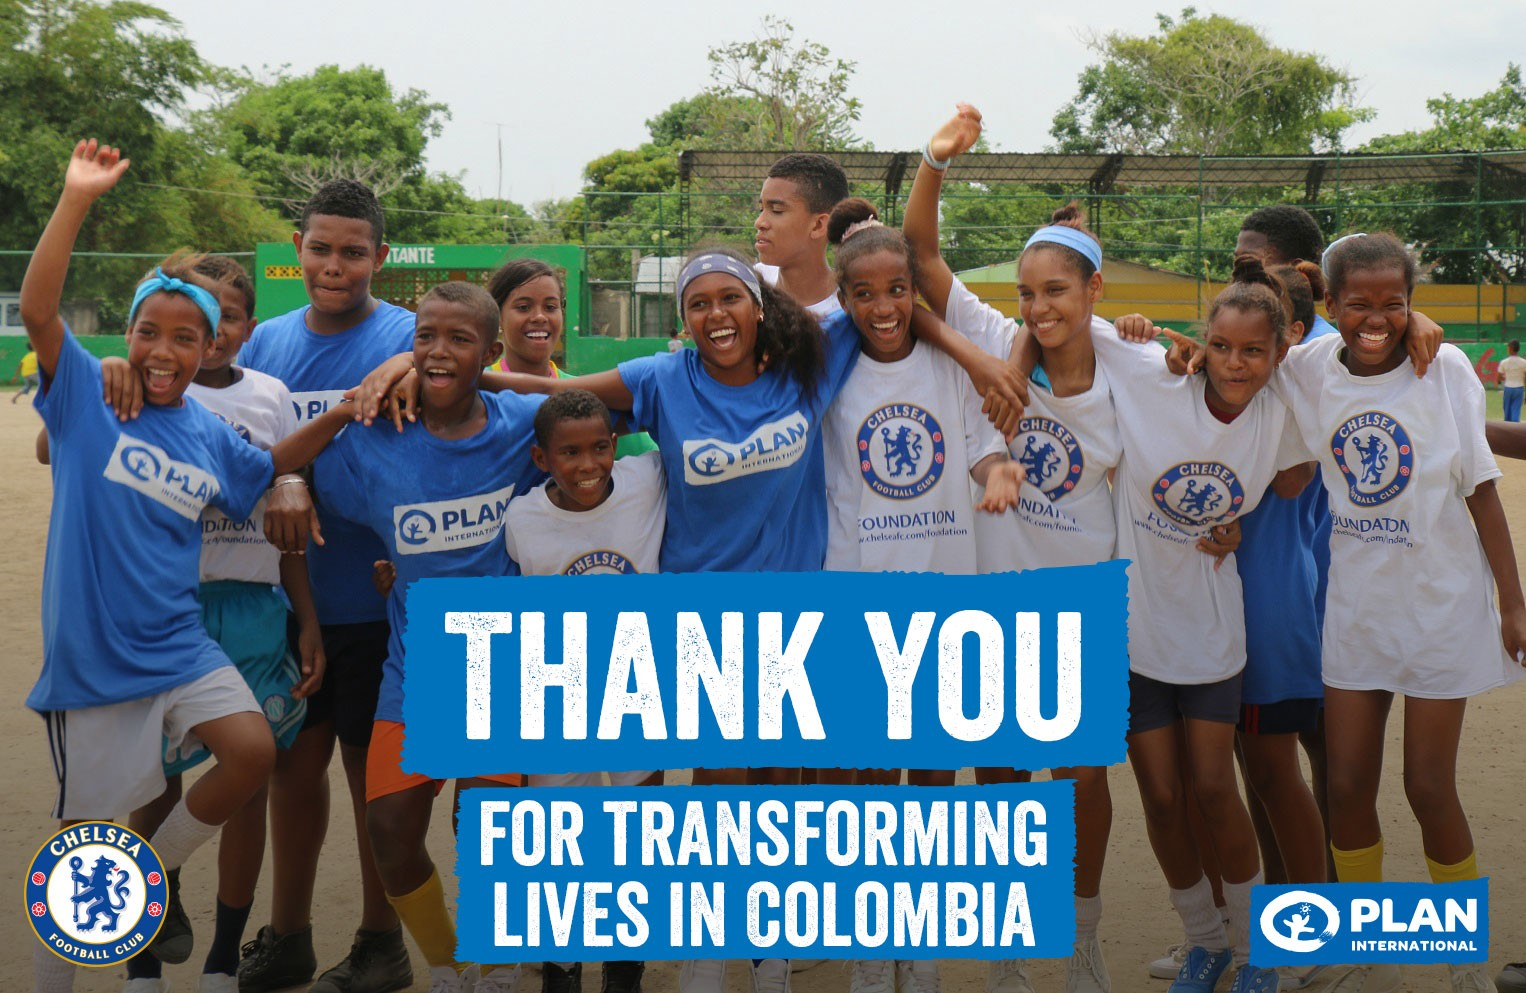 Thanks to the Champions of change participants in supporting our work in Colombia